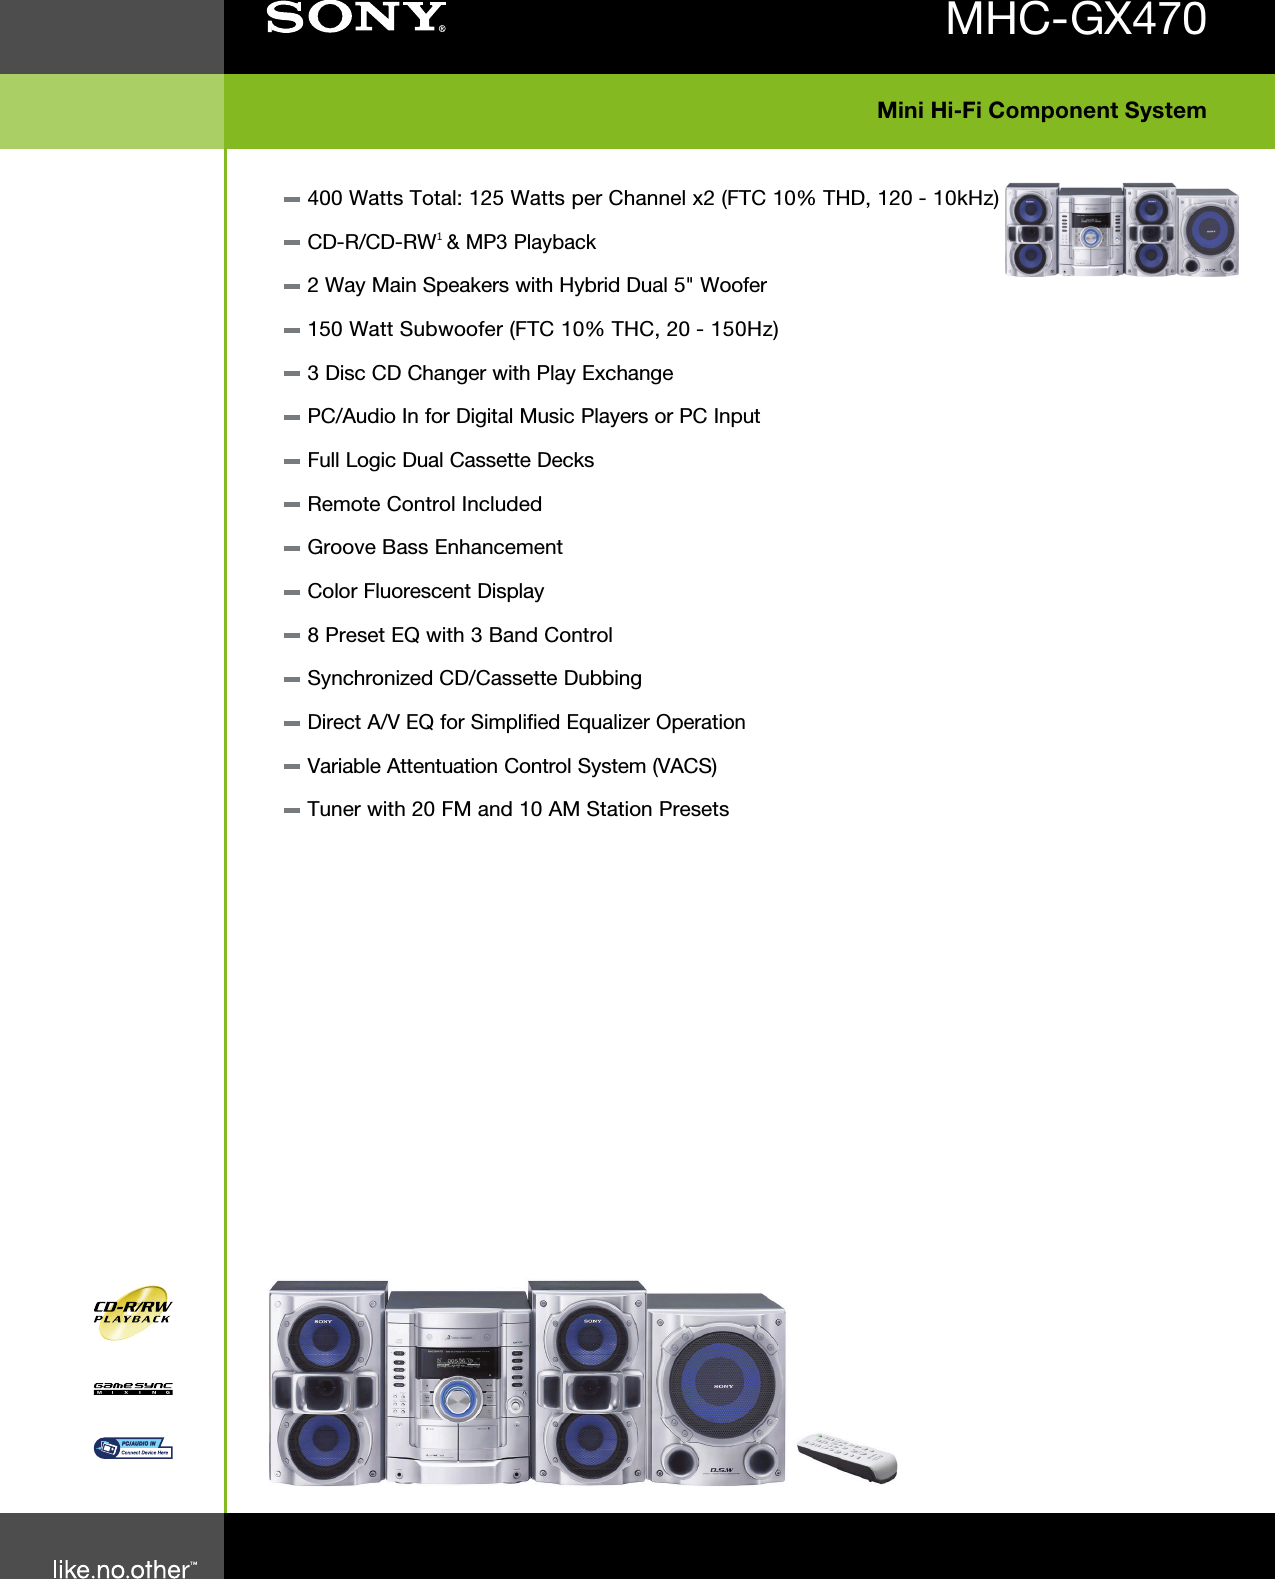 Sony Mhc Gx470 User Manual Marketing Specifications